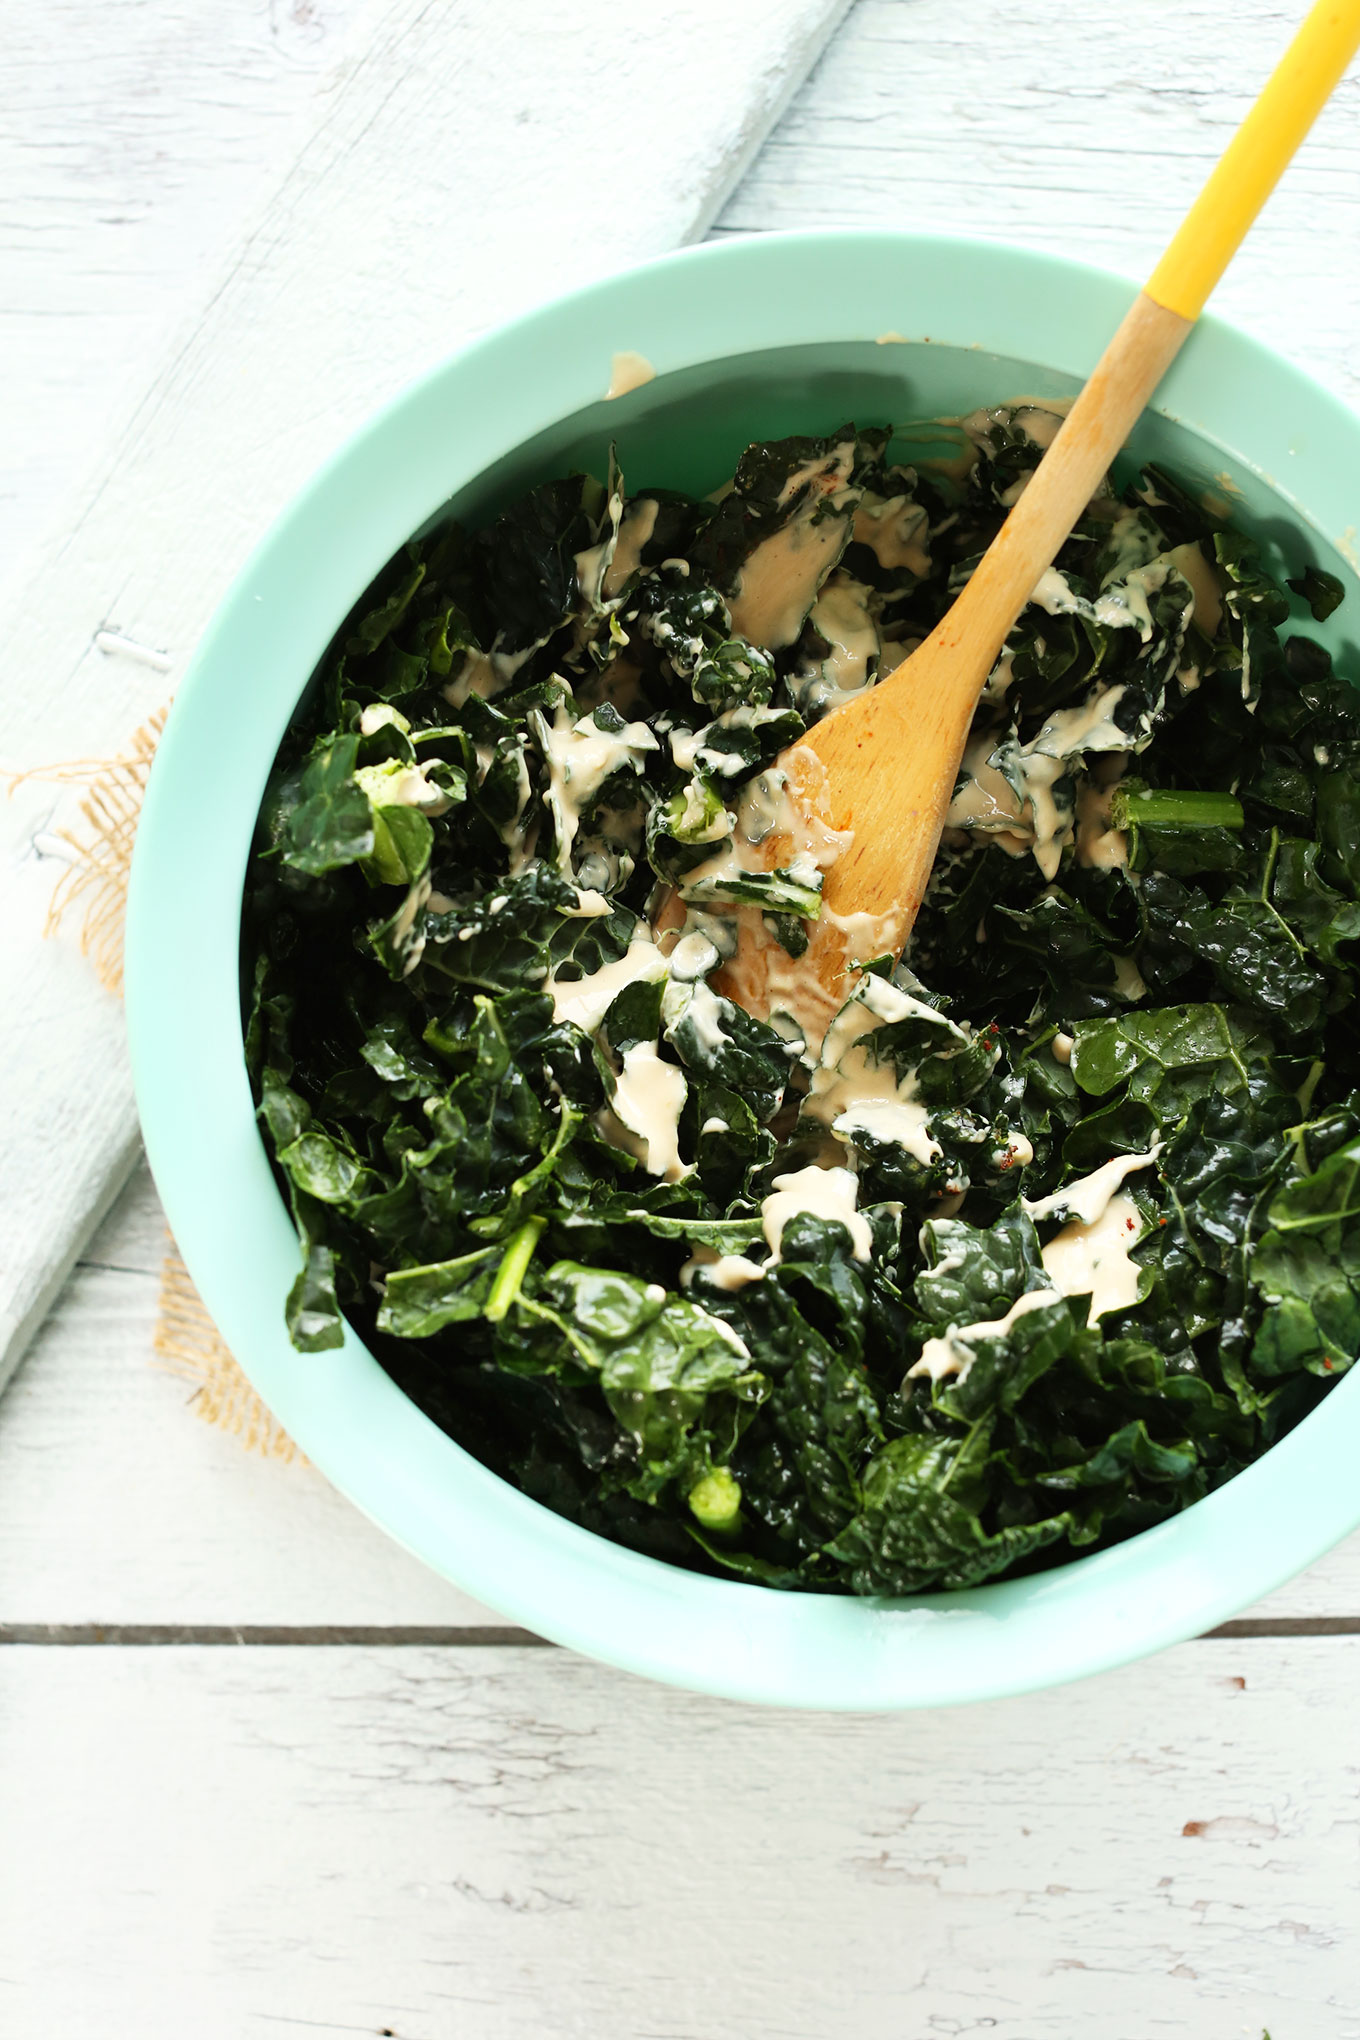 Mixing kale with dressing in a large mixing bowl